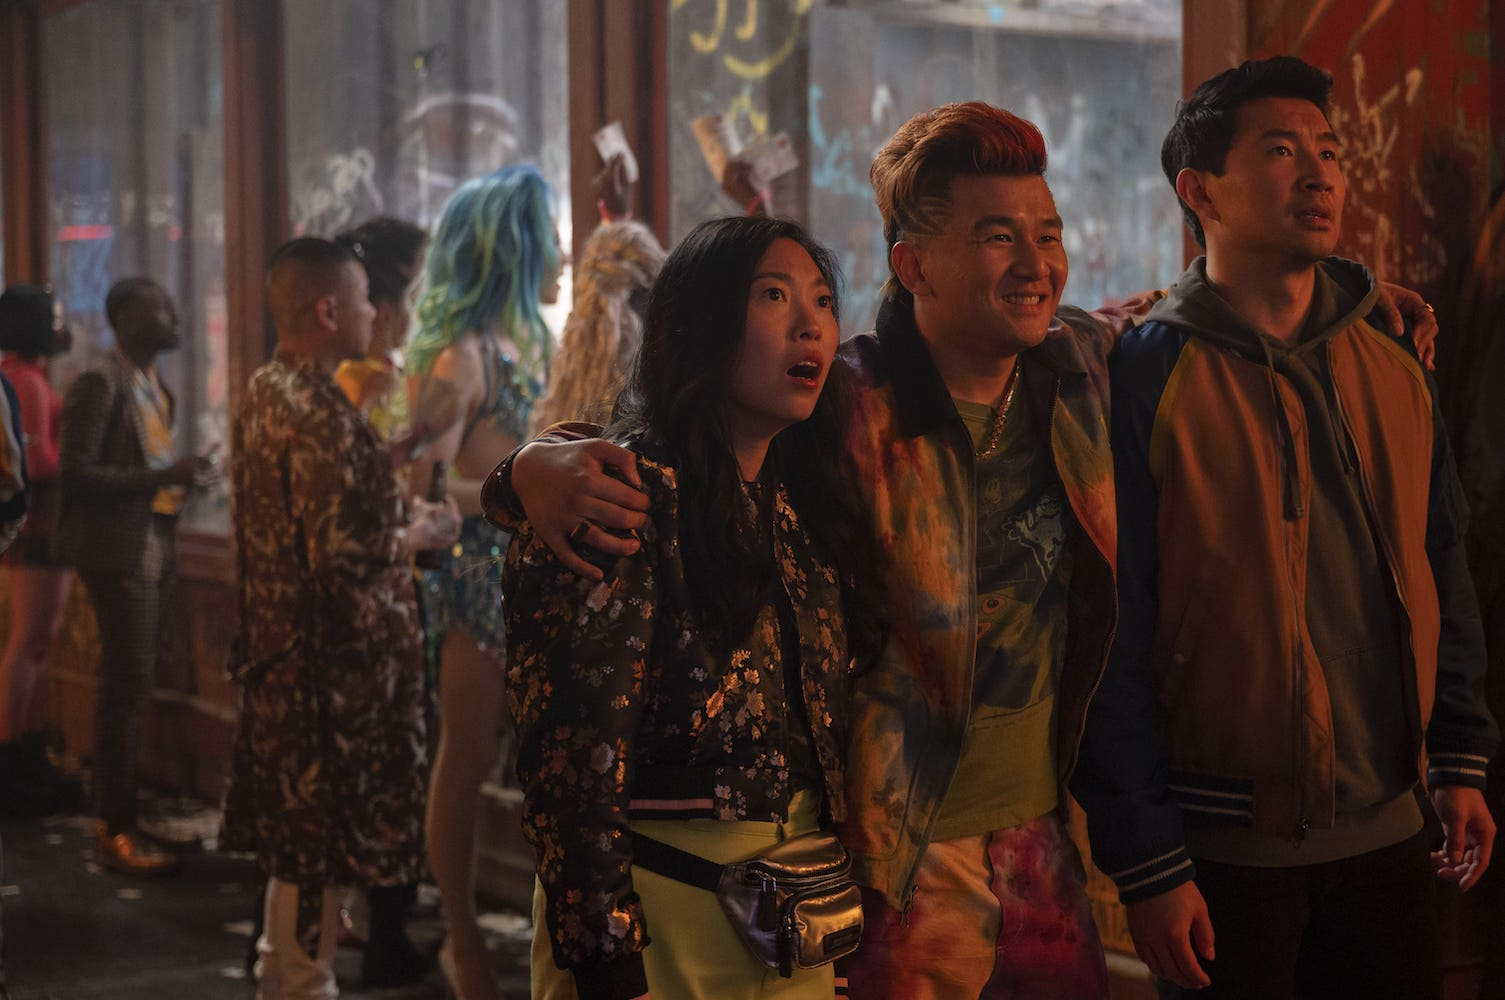 (L-R): Katy (Awkwafina), Jon Jon (Ronny Chieng) and Shang-Chi (Simu Liu) in Marvel Studios' SHANG-CHI AND THE LEGEND OF THE TEN RINGS. Photo by Jasin Boland. ©Marvel Studios 2021. All Rights Reserved.